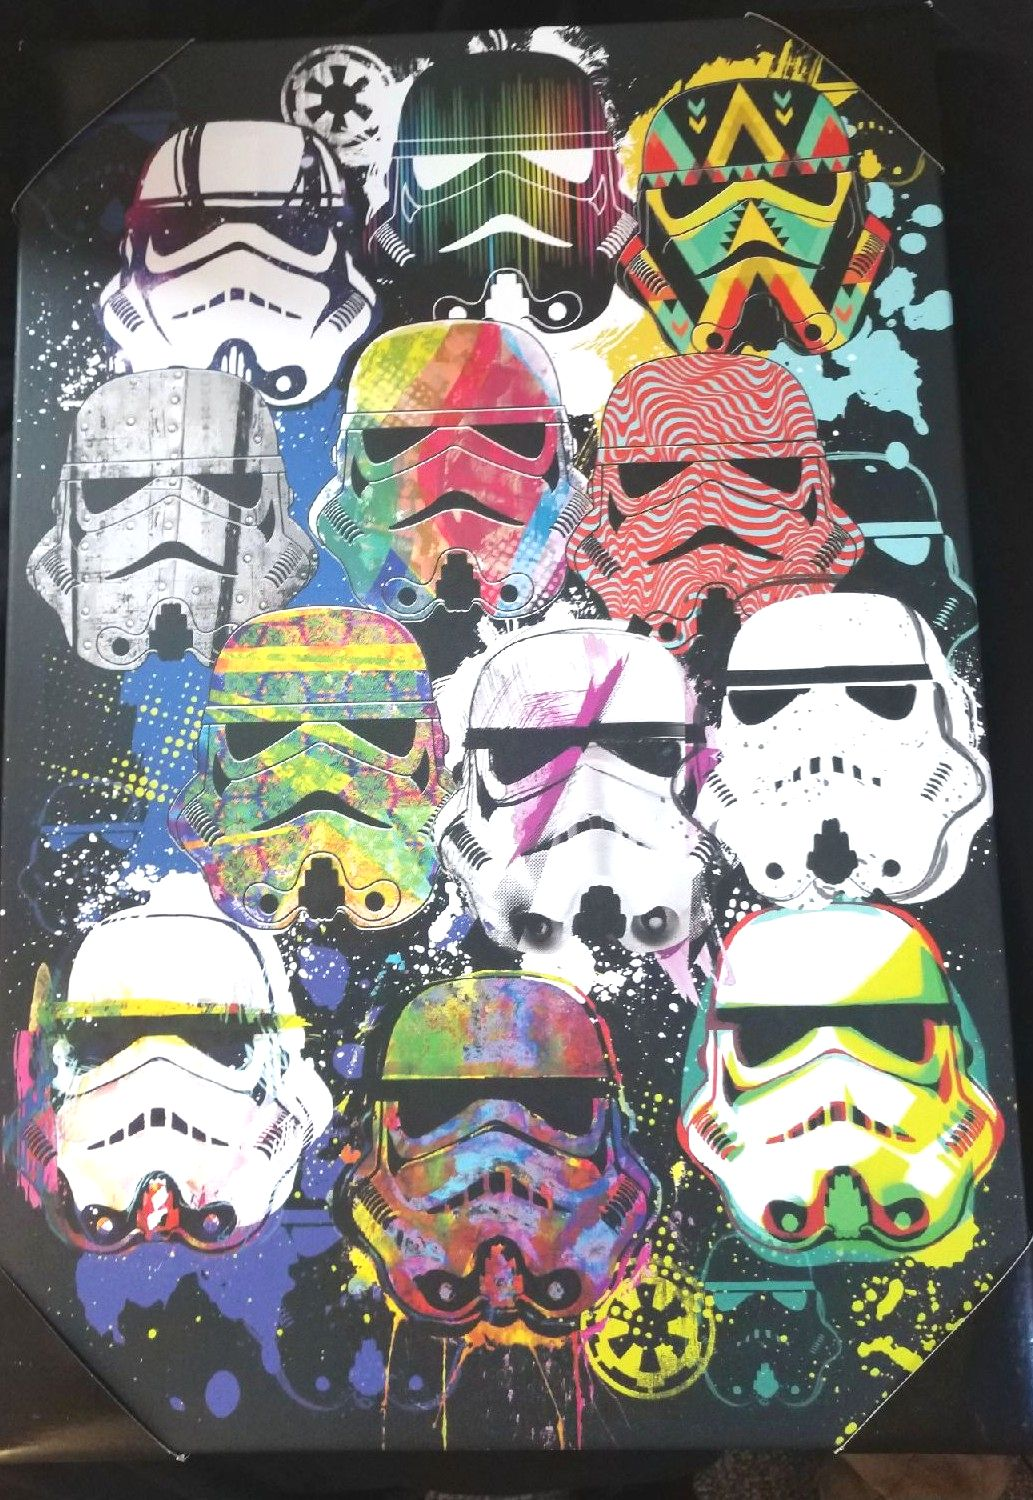 Star wars stormtrooper wall art